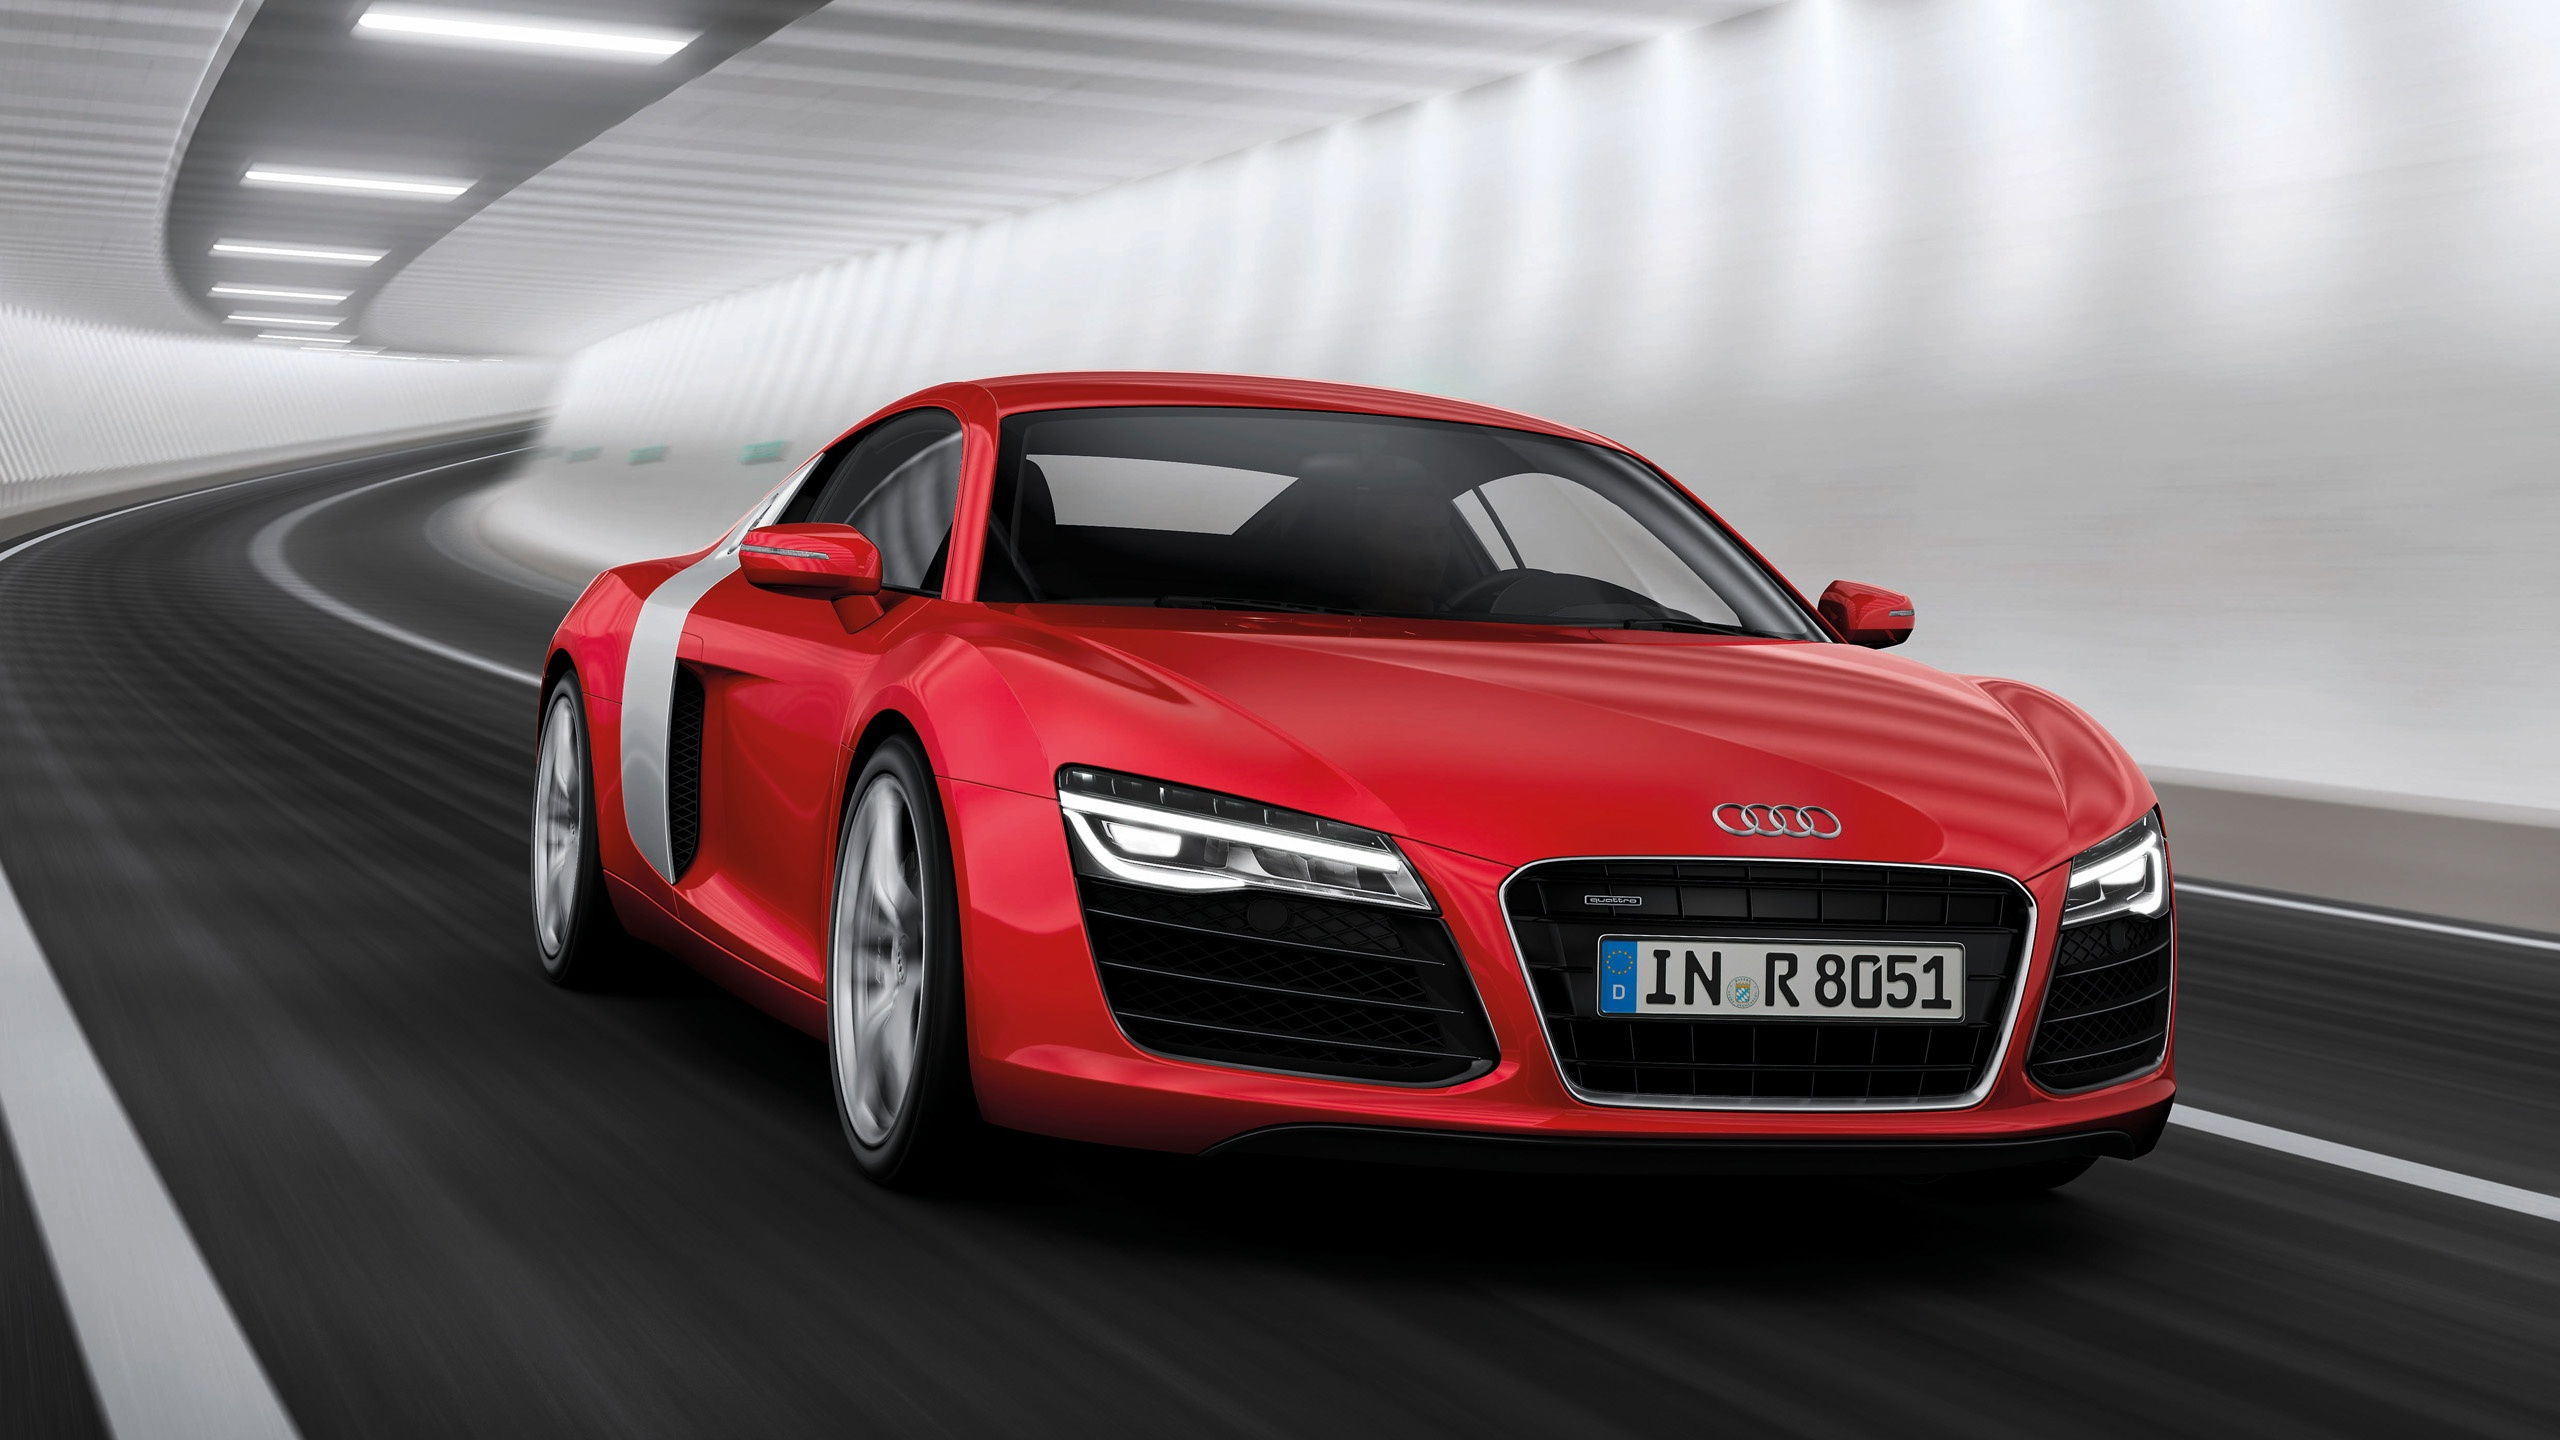 2560x1440 2013 Audi R8 Motion Red Front Angle Desktop Pc